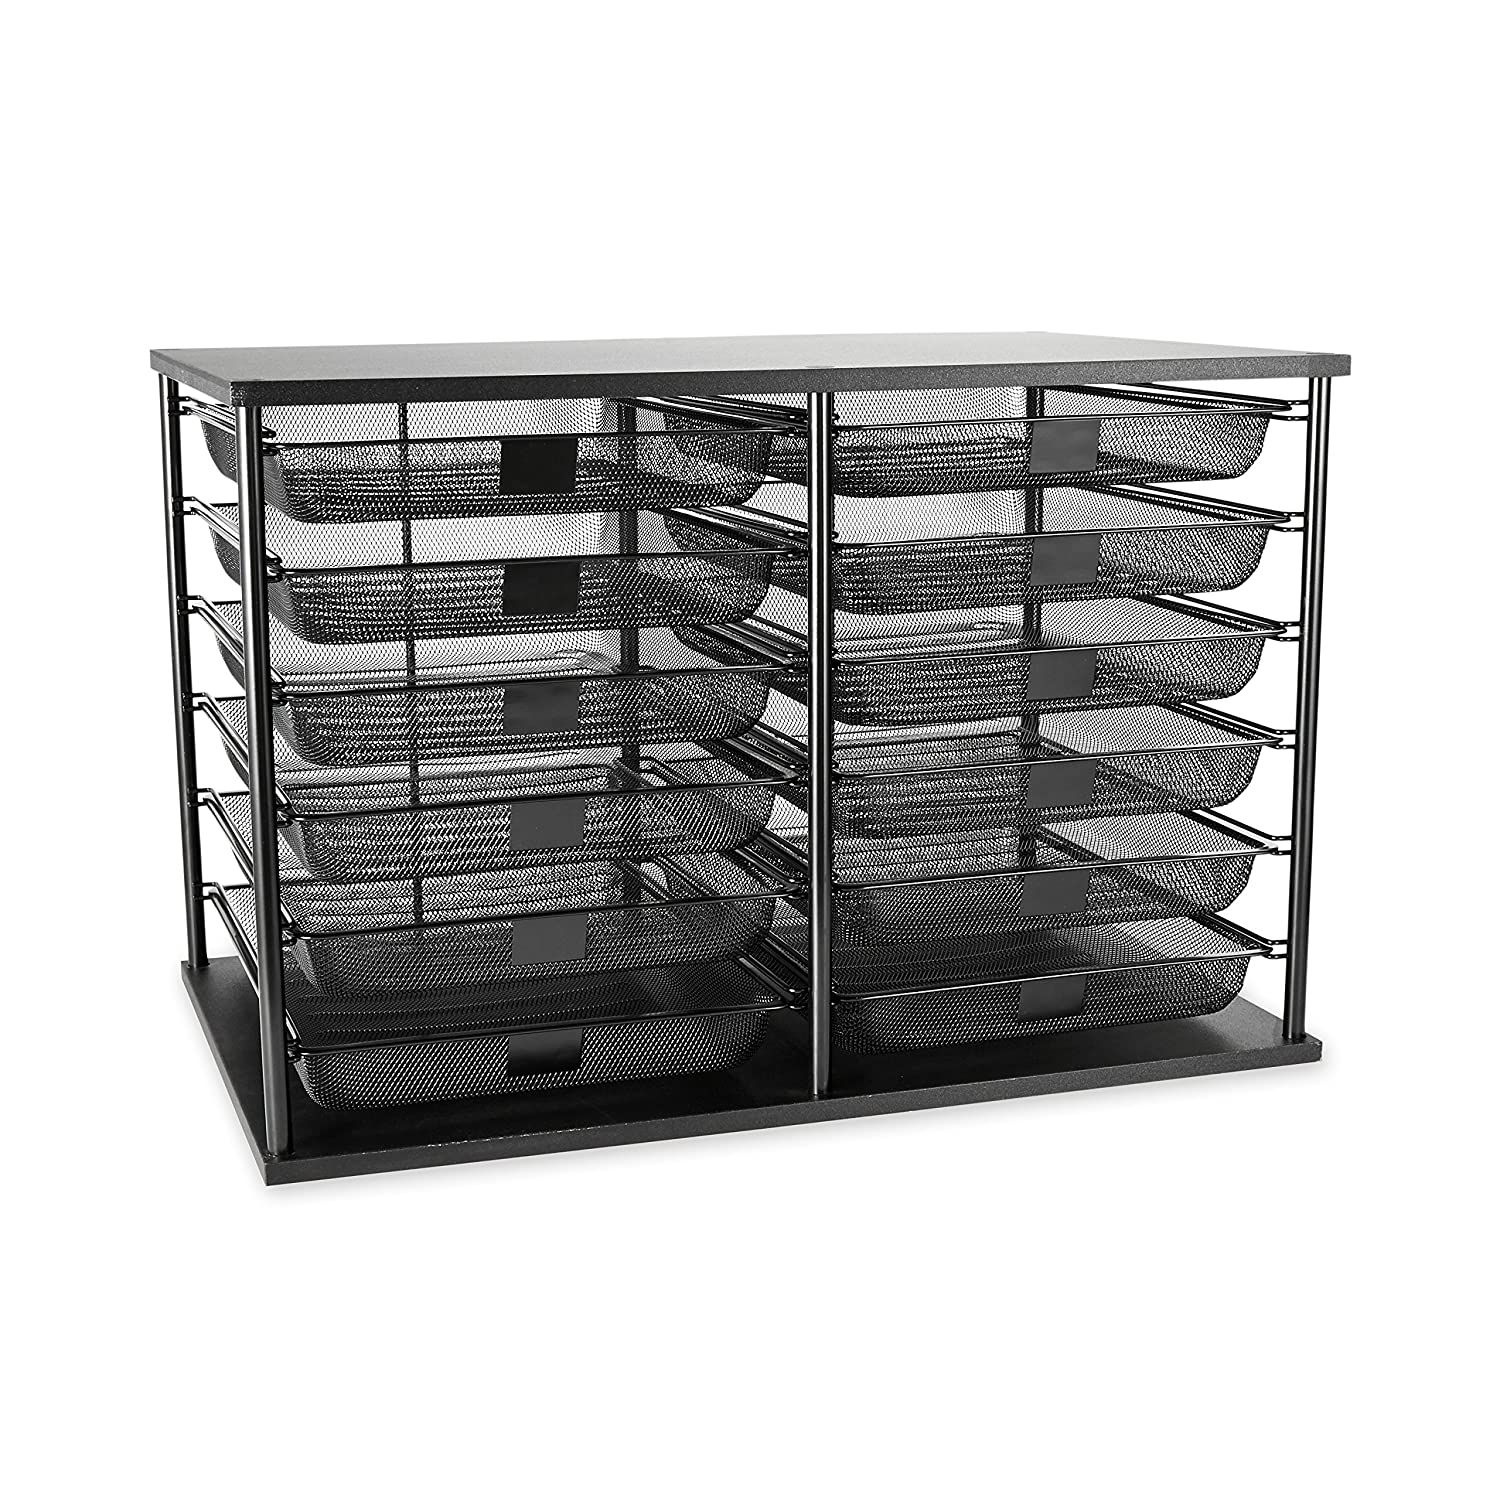 Rubbermaid 1735746 12-Compartment Organizer